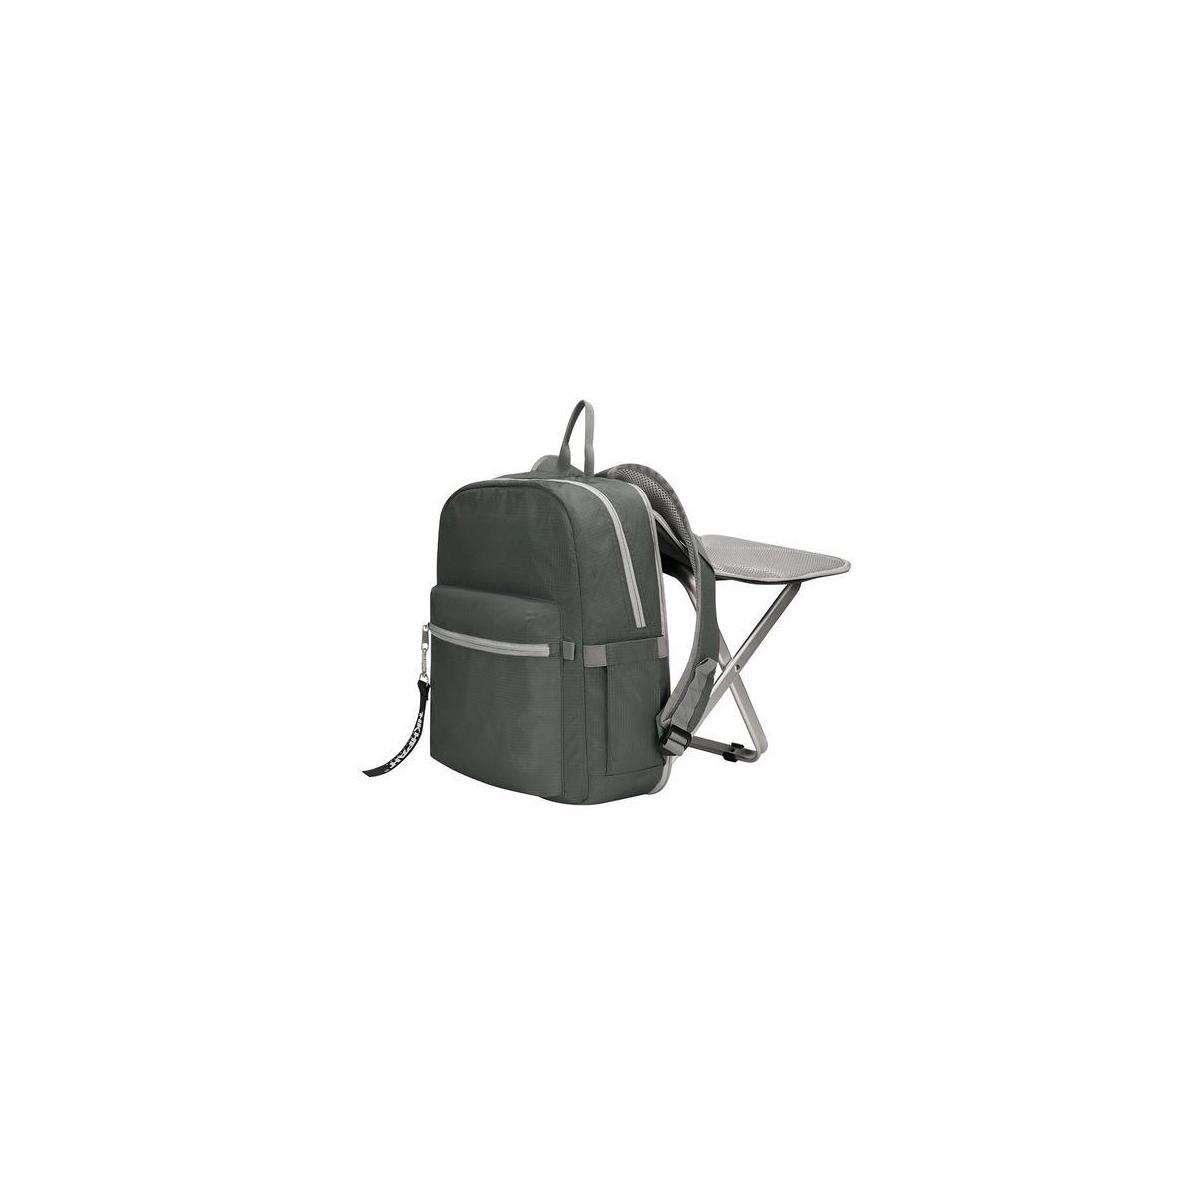 BigTron Ultralight Backpack Stool Combo - Compact Lightweight Backpack and Portable Folding Cooler Chair- Perfect for Camping Fishing Hiking Picnic Outdoor Watching Sports Events BBQ -Grey/Black